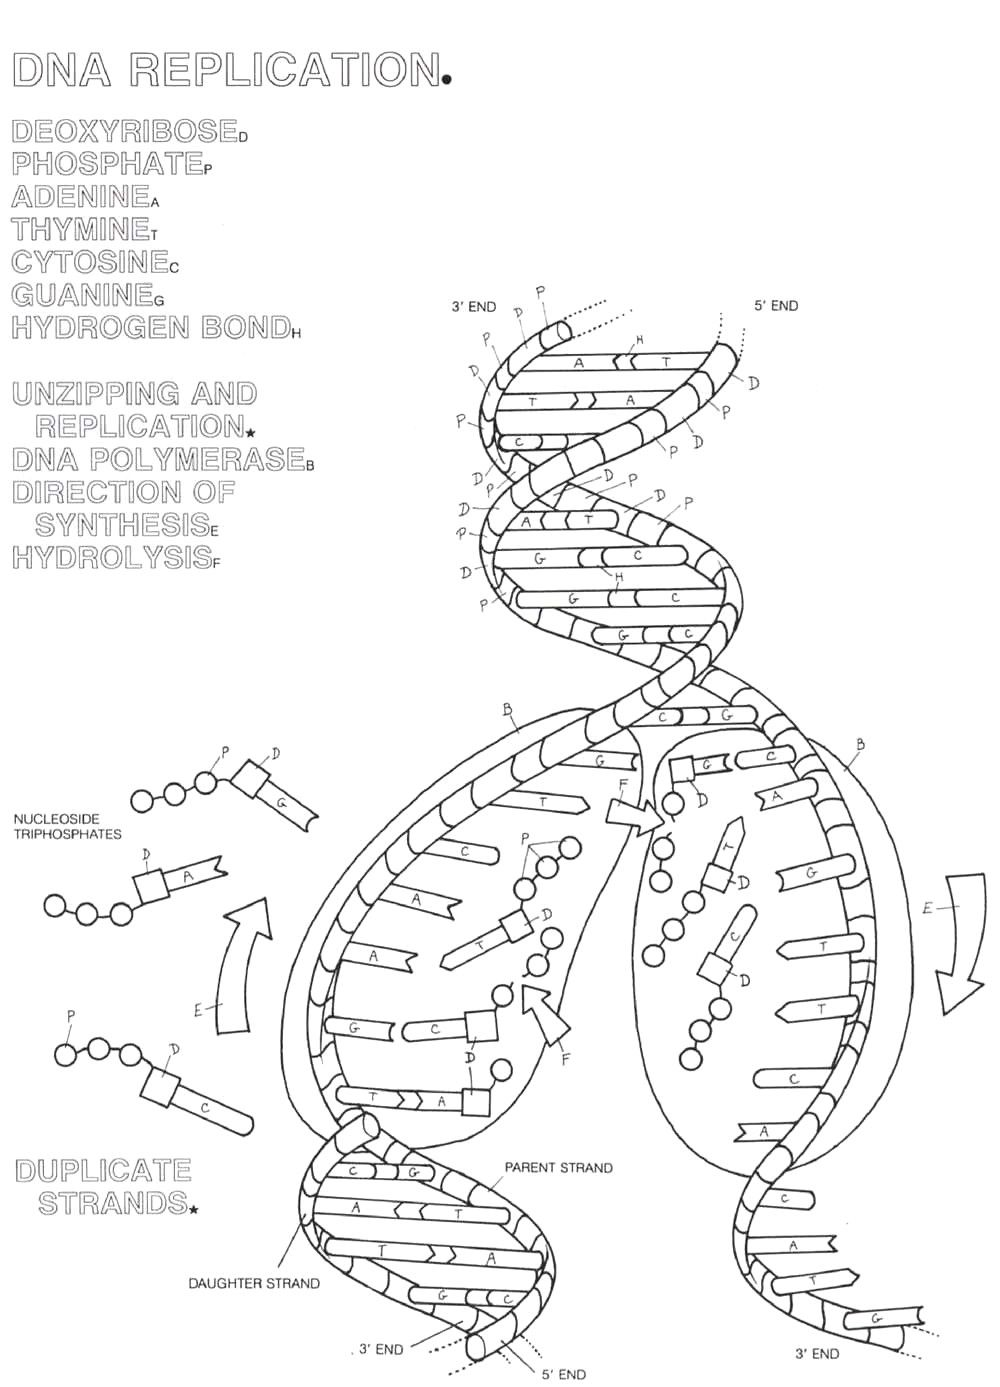 Dna Replication Coloring Page Coloring Home Coloring Pages